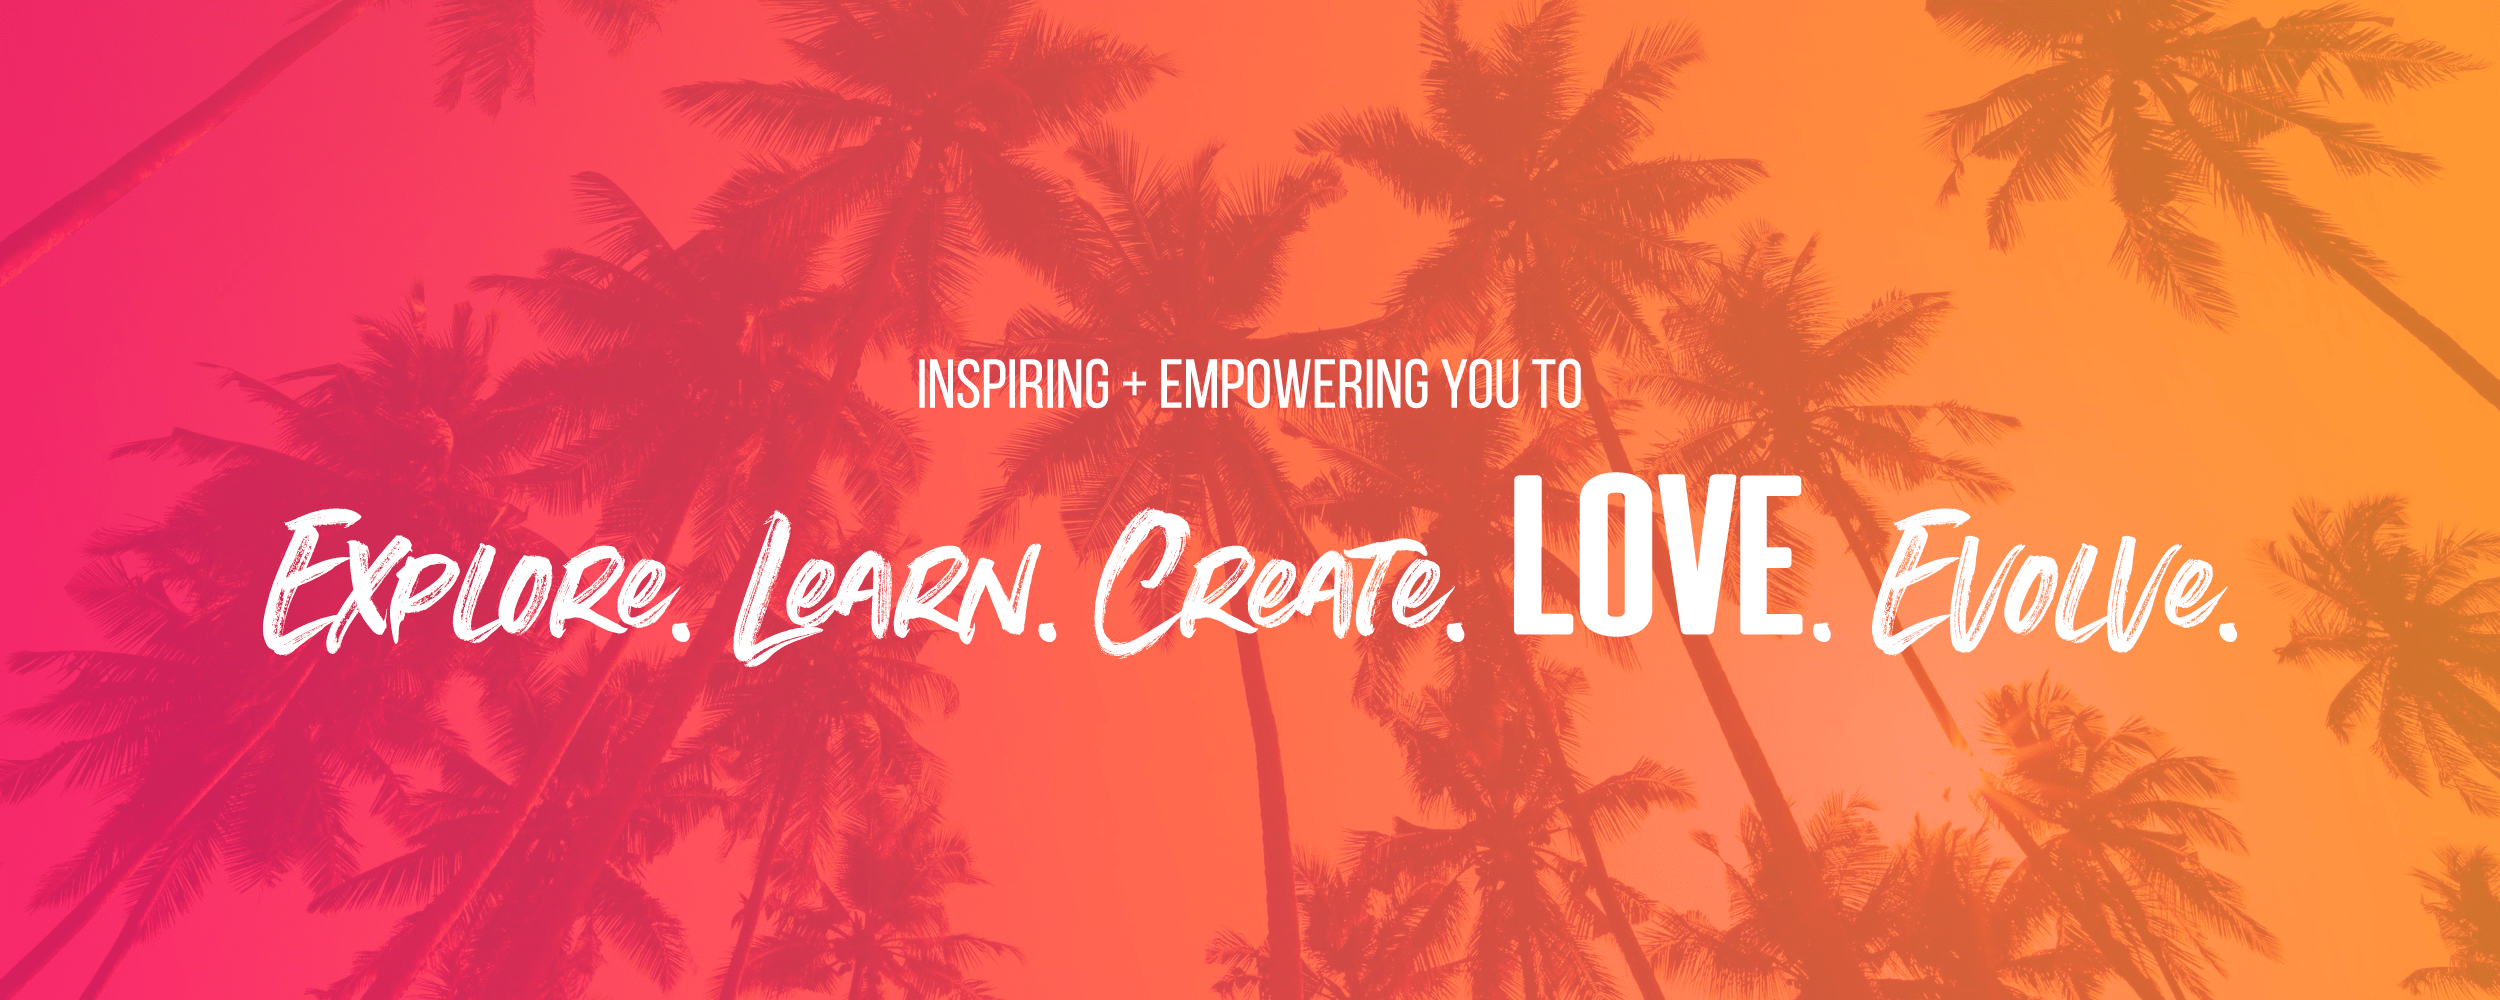 Explore Learn Create Love Evolve